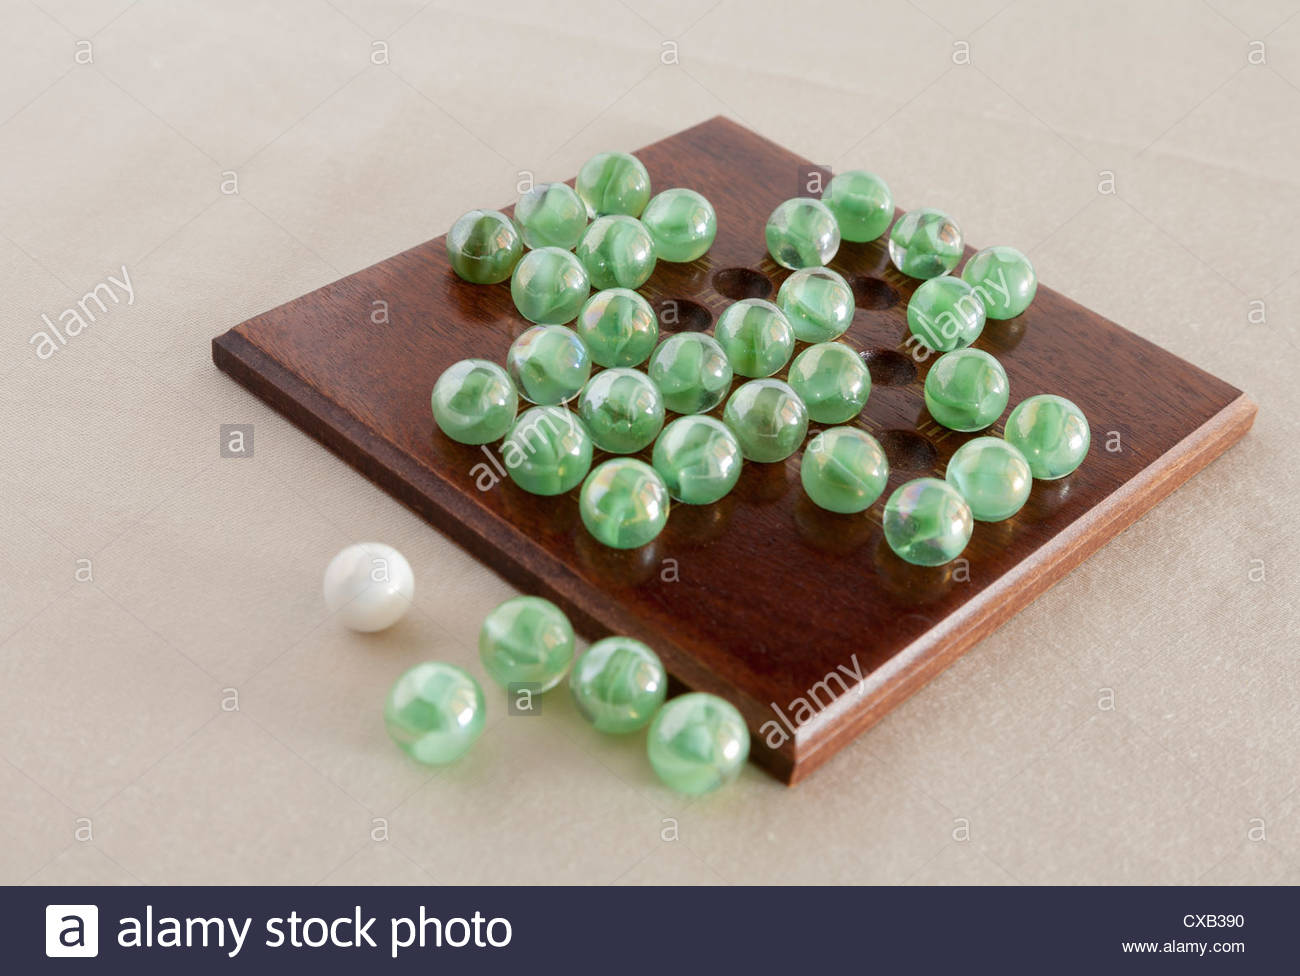 glass marble solitaire game on wooden board - Stock Image